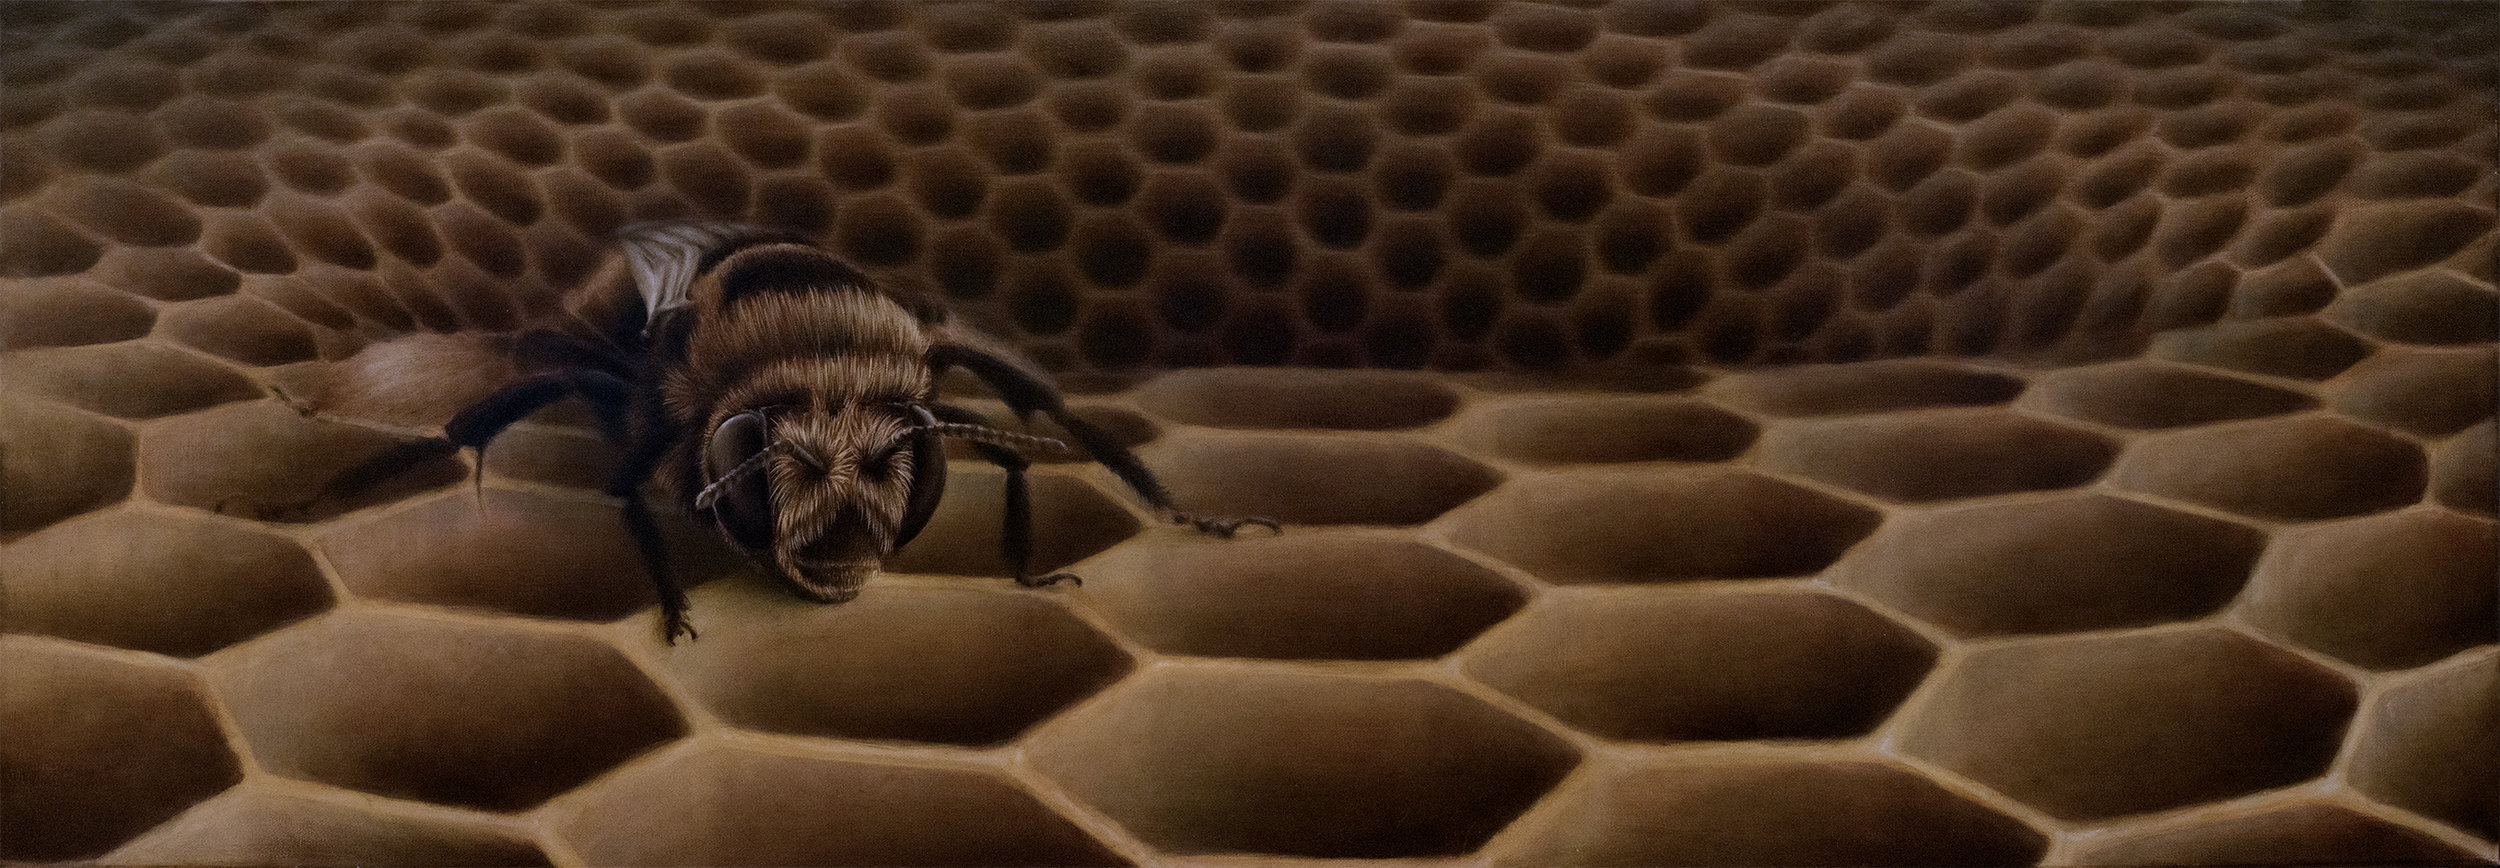 The Last Bee (140 x 60cm) Oil on Canvas